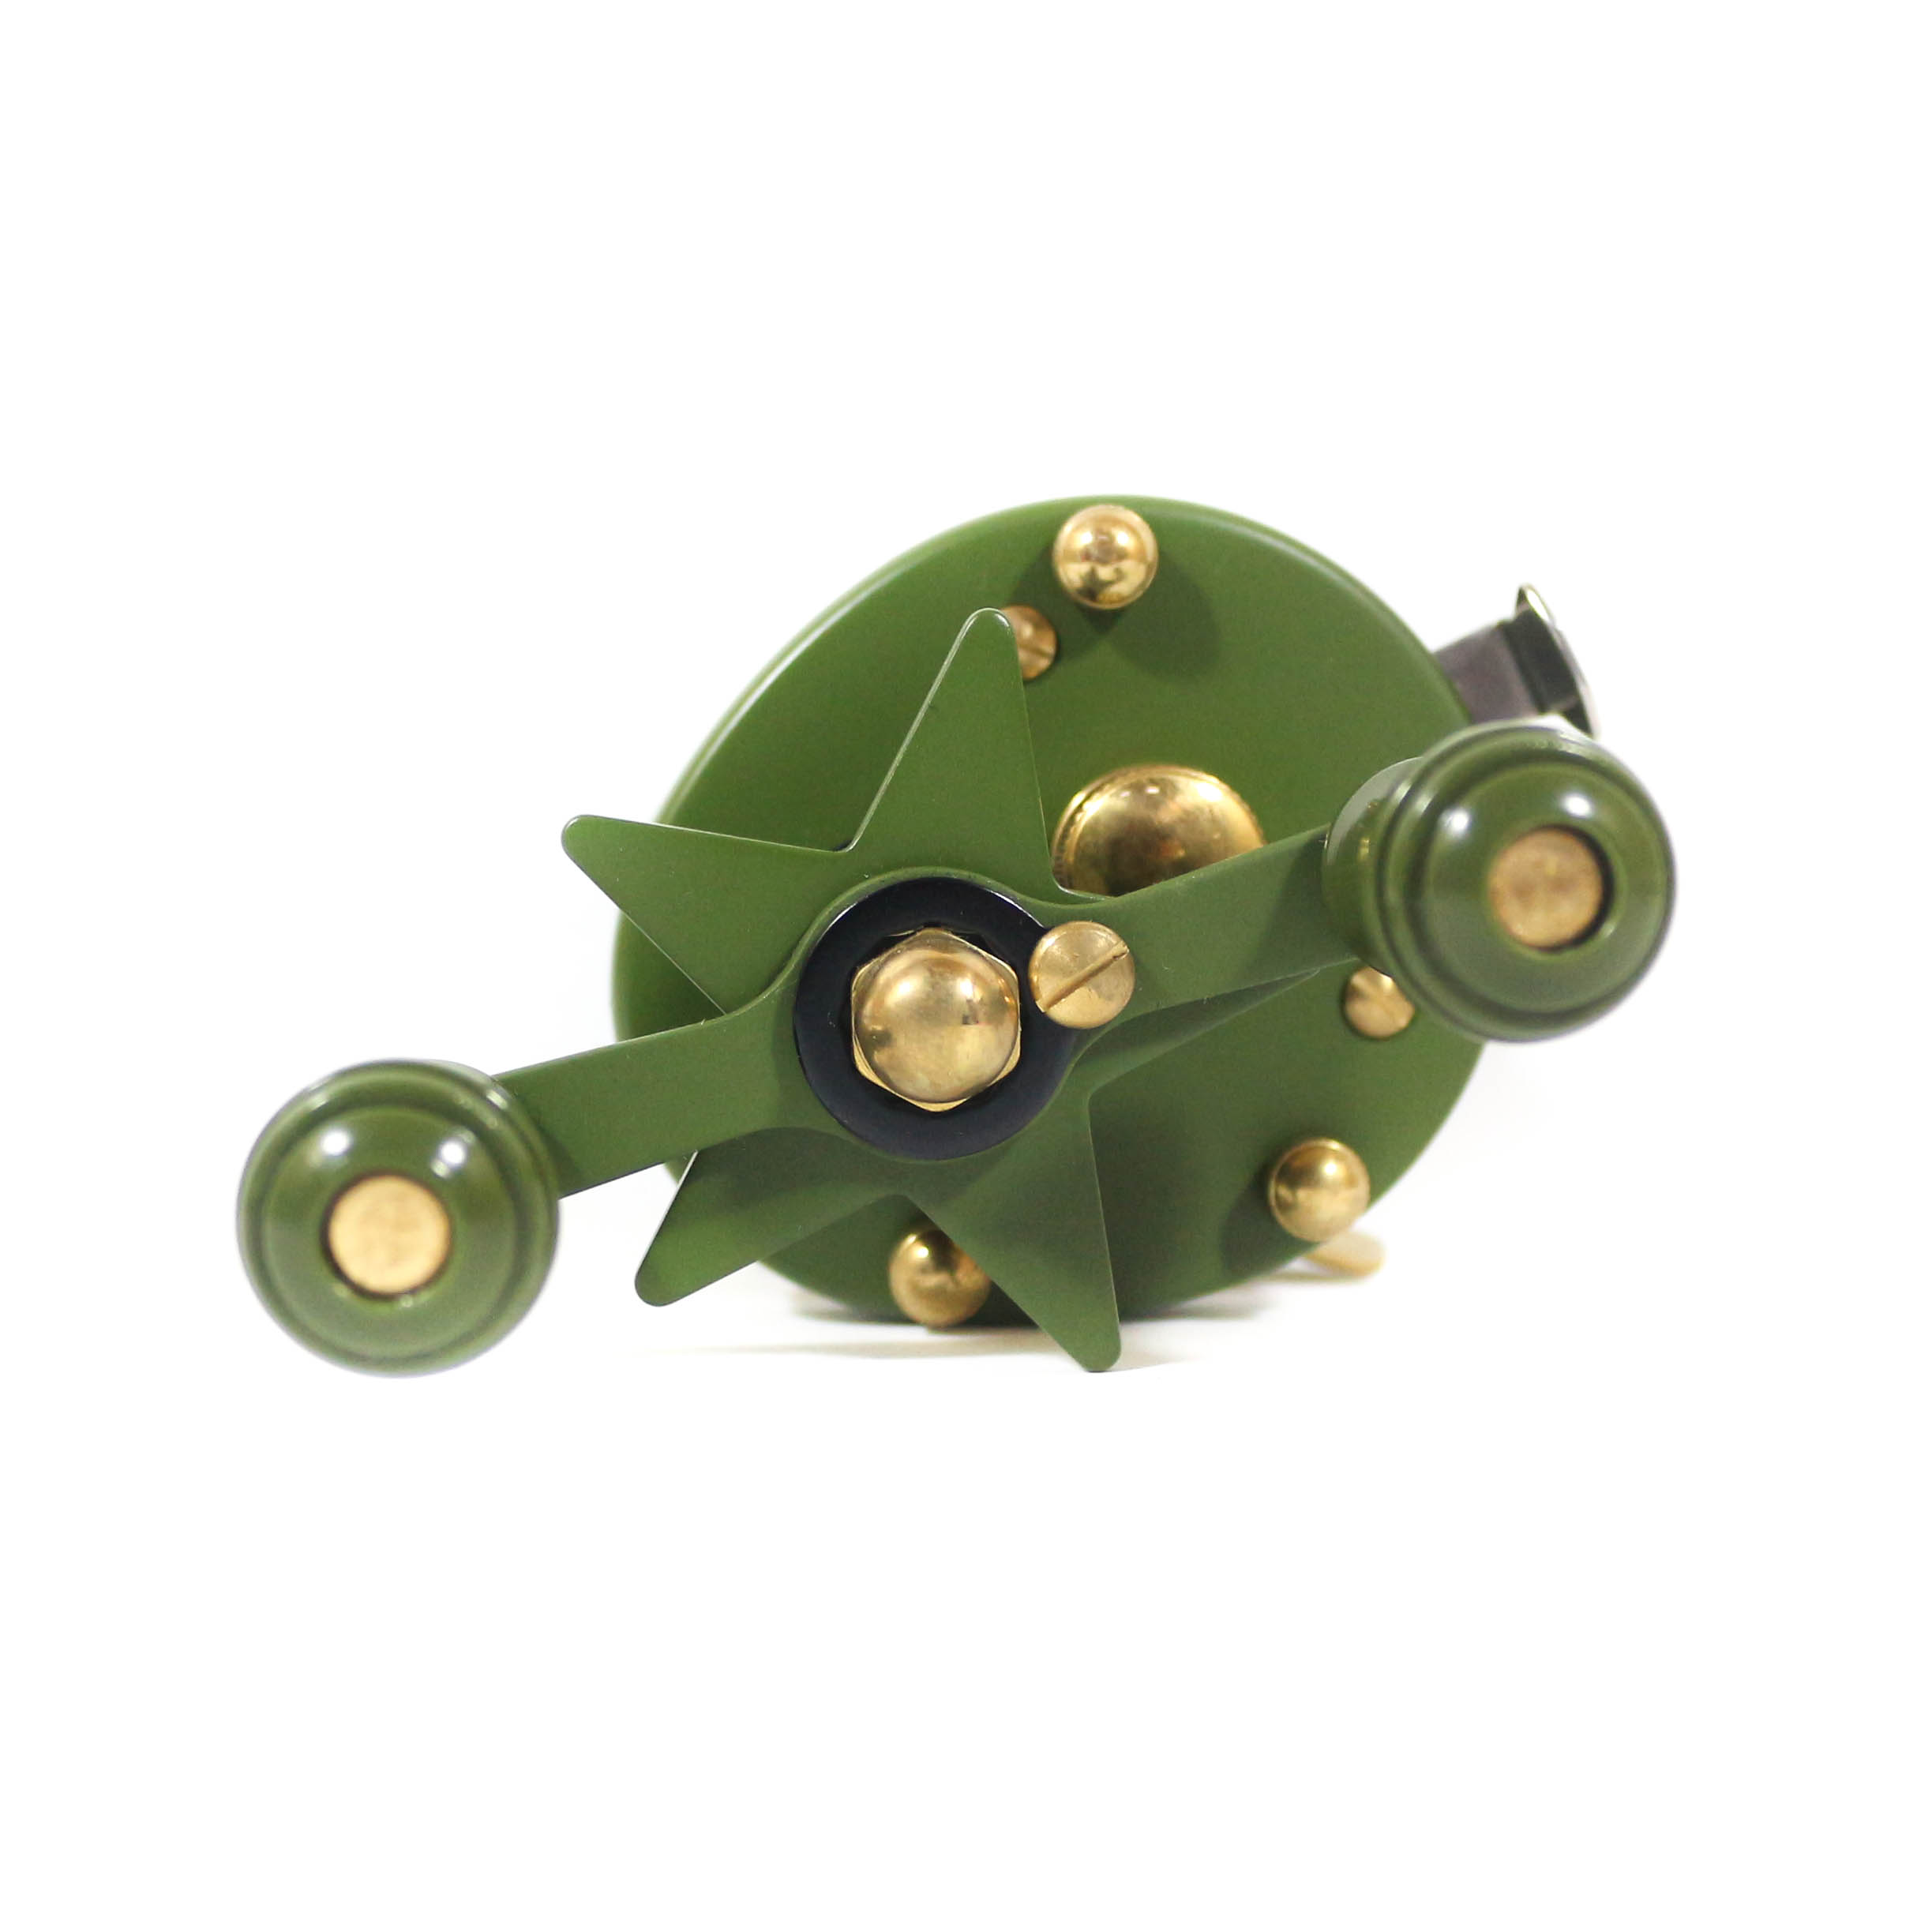 Frog Baitcast Reel Toy Machine Military (2009)